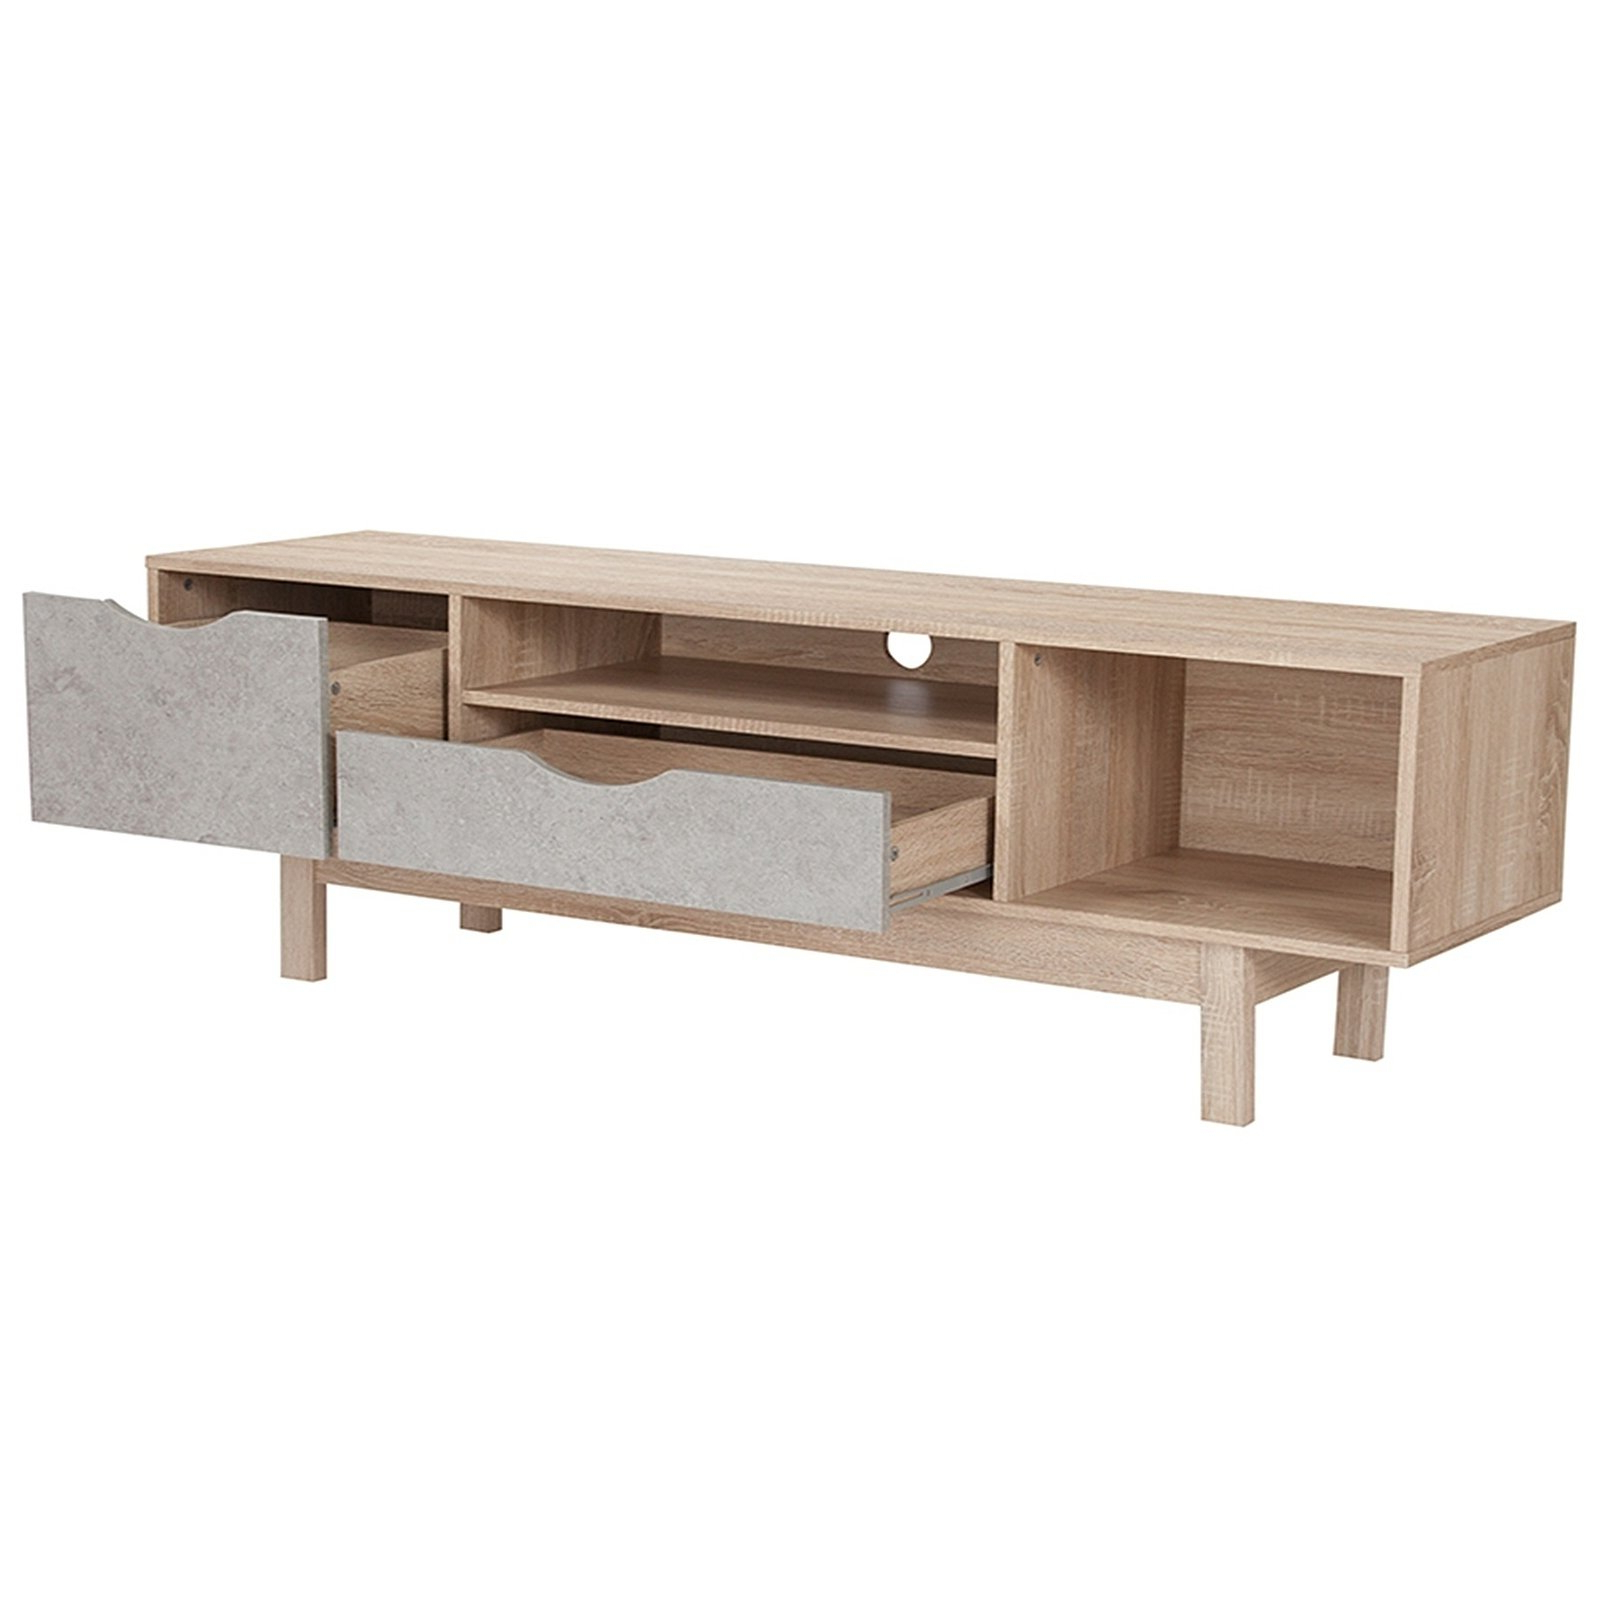 Shop Norwalk 2 Drawer Tv Stand With Open Shelves In Oak Wood Finish Inside 2017 Santana Oak Tv Furniture (View 19 of 20)